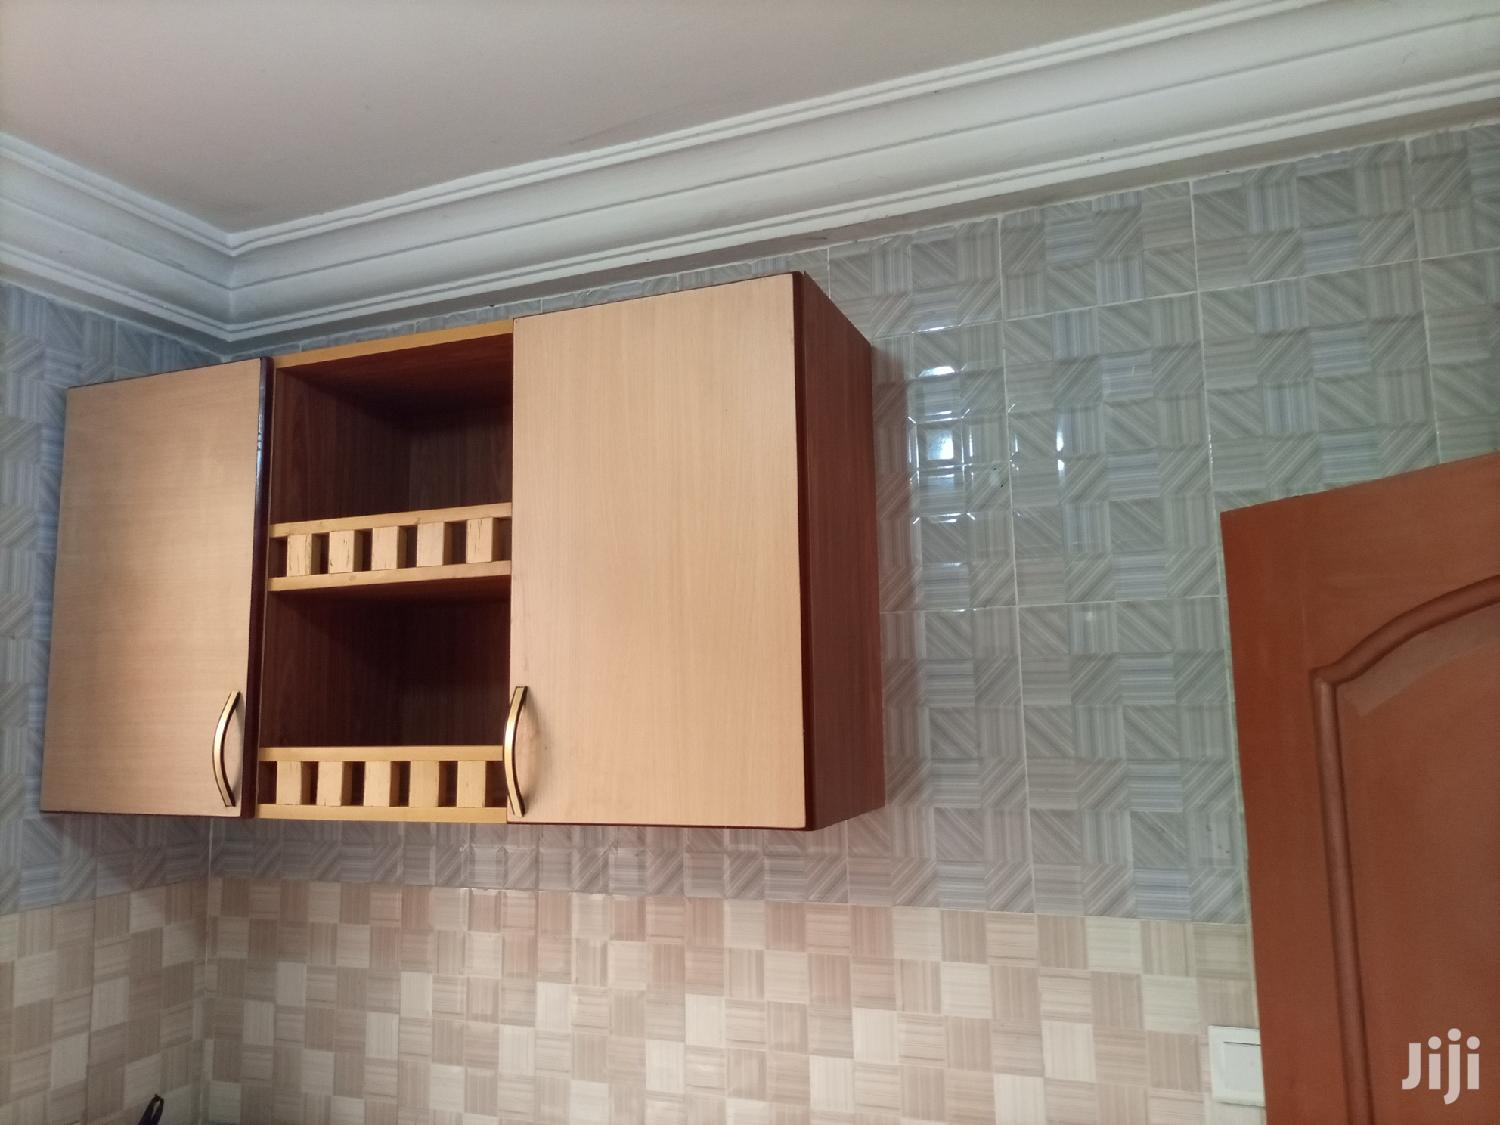 Two Bedroom Self-contain For Rent At Community 25 | Houses & Apartments For Rent for sale in Tema Metropolitan, Greater Accra, Ghana